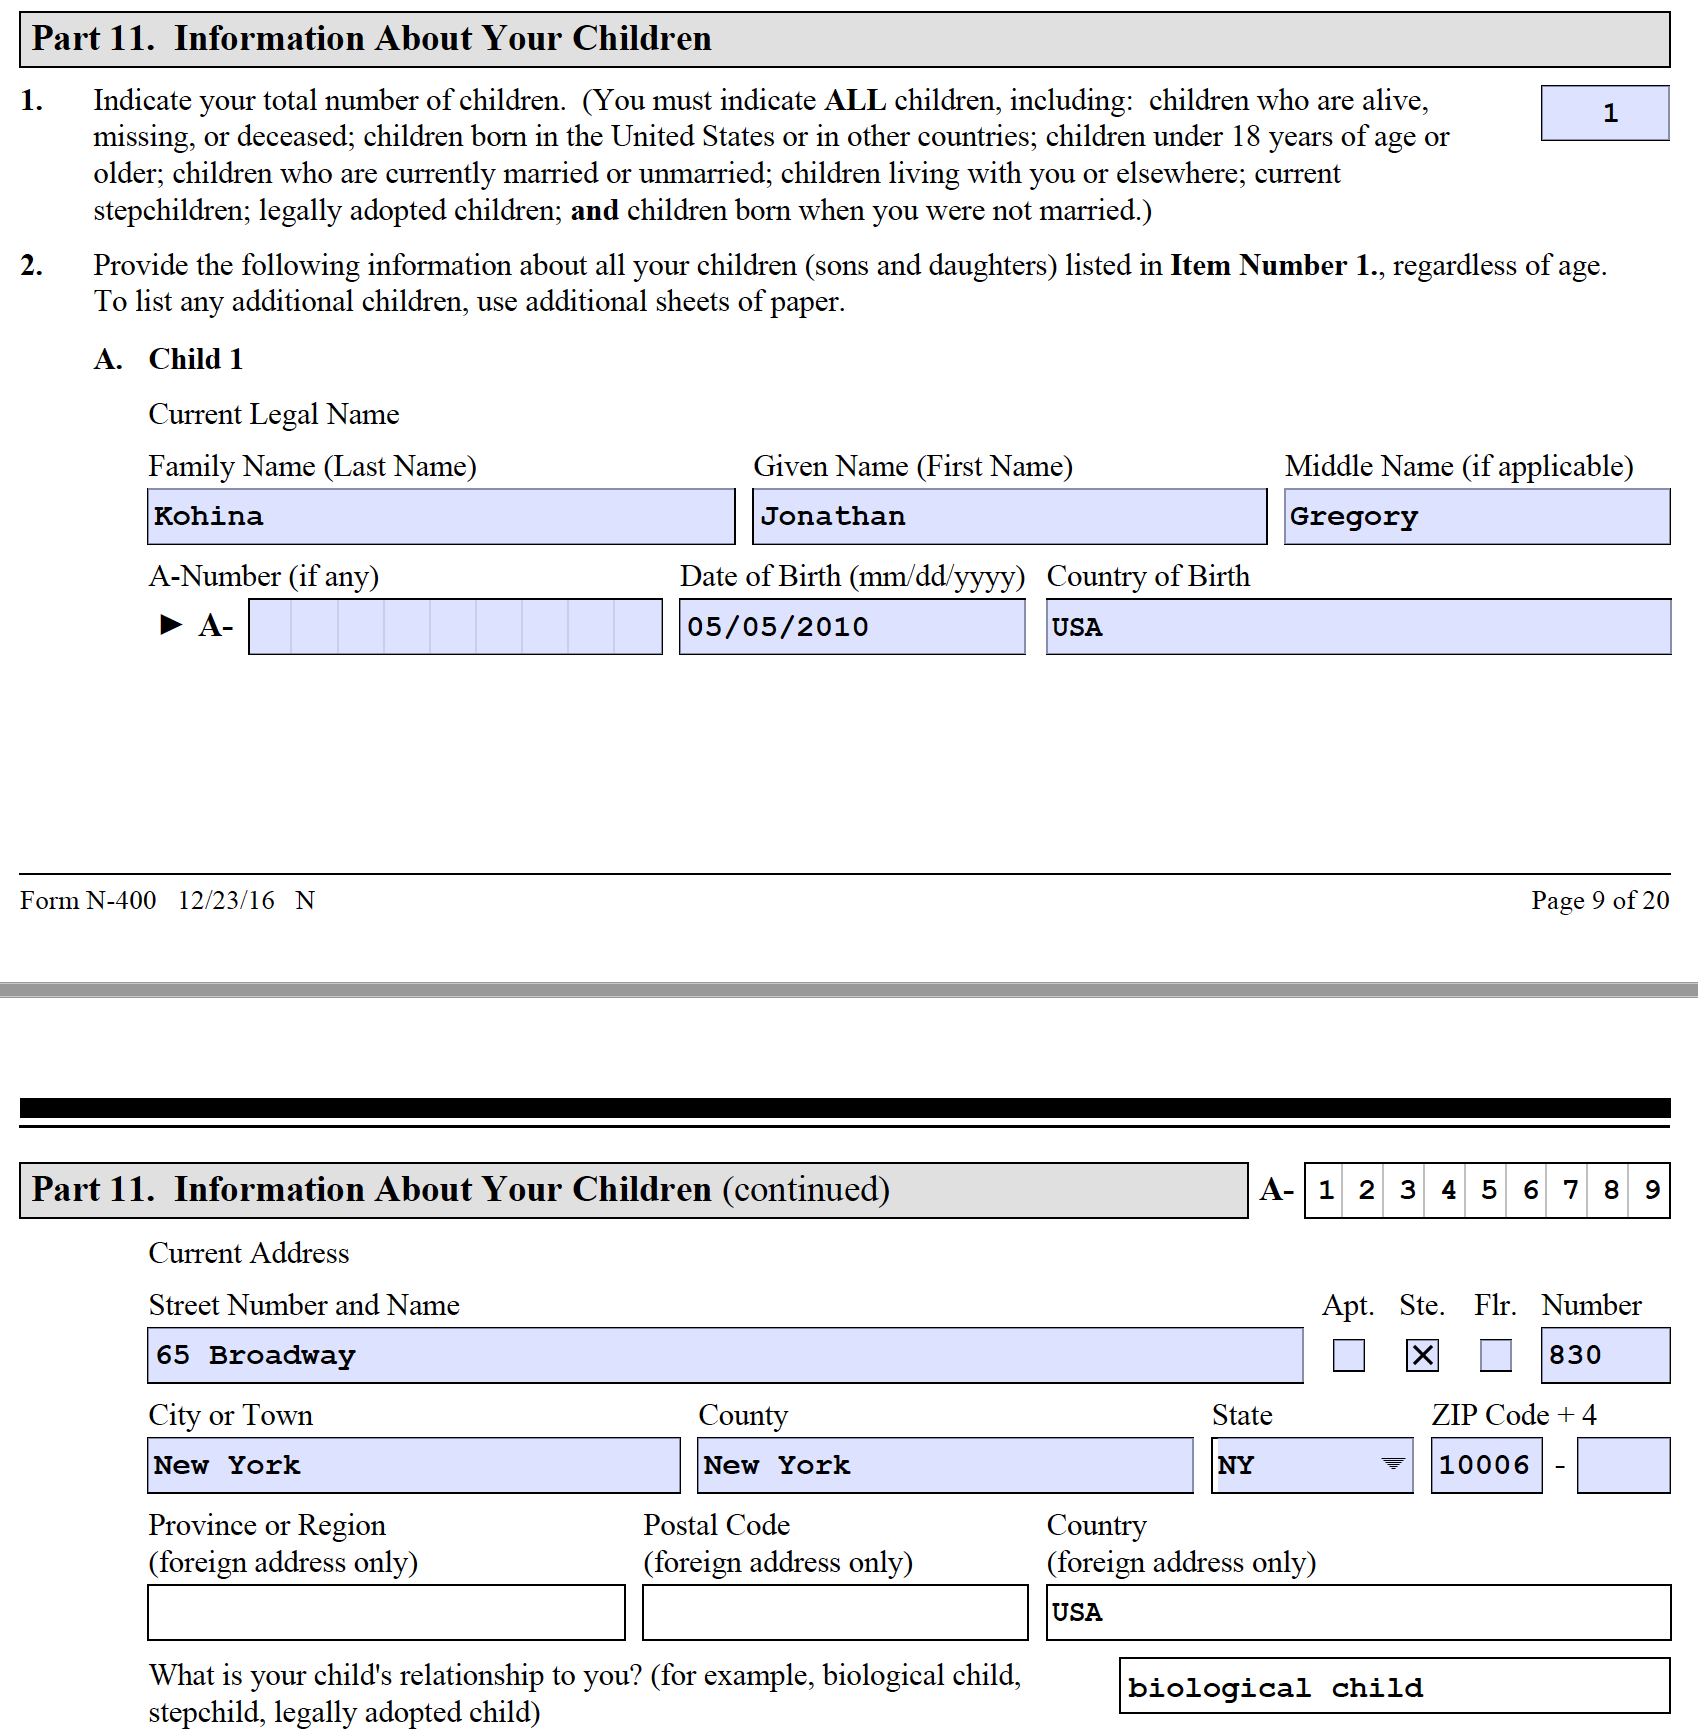 n-400_pdf__SECURED_-12 Form N Application For Naturalization Pdf on n-400 sample cover letter, dairy queen printable applications pdf, n-400 printable, n-400 fees, n-400 sample of completed, n-400 100 questions, n-400 citizenship test, n-400 form print, n-400 card, n-400 form filled, printable job applications pdf, n-400 citizen forms, sample minutes of meeting pdf,